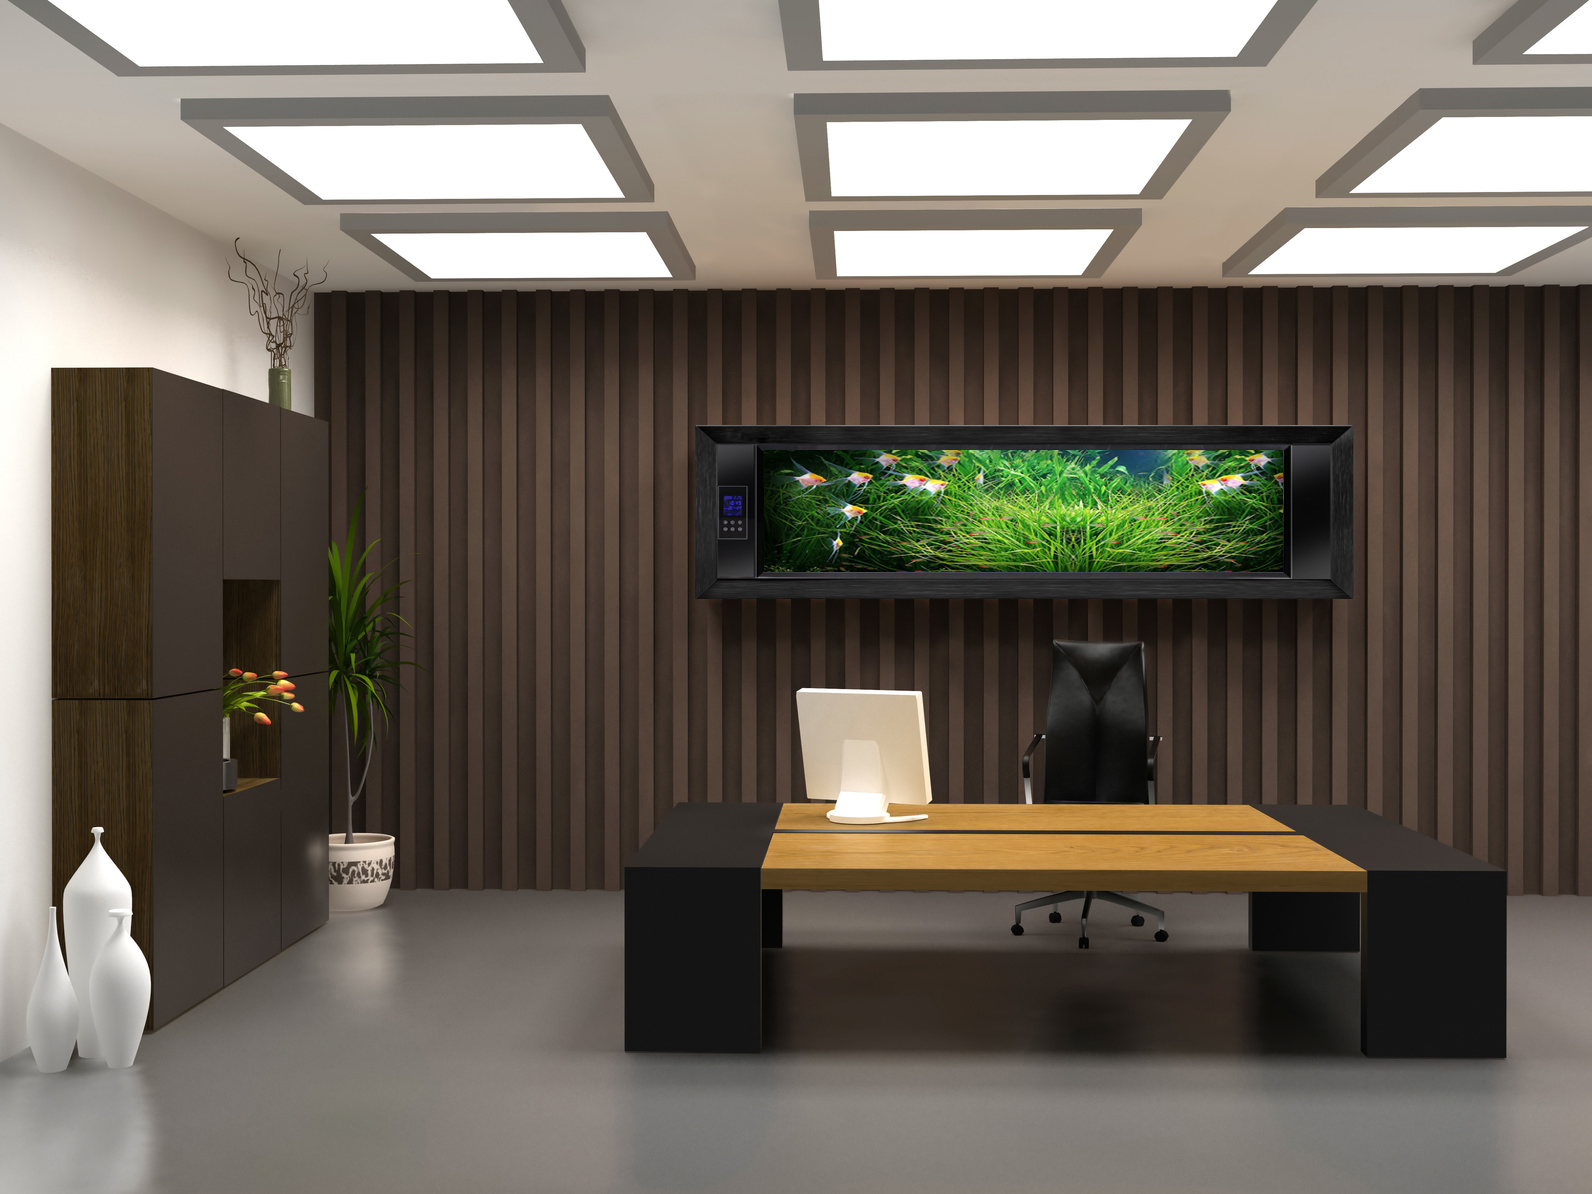 Elegant ceo office design bellisima Office interior decorating ideas pictures